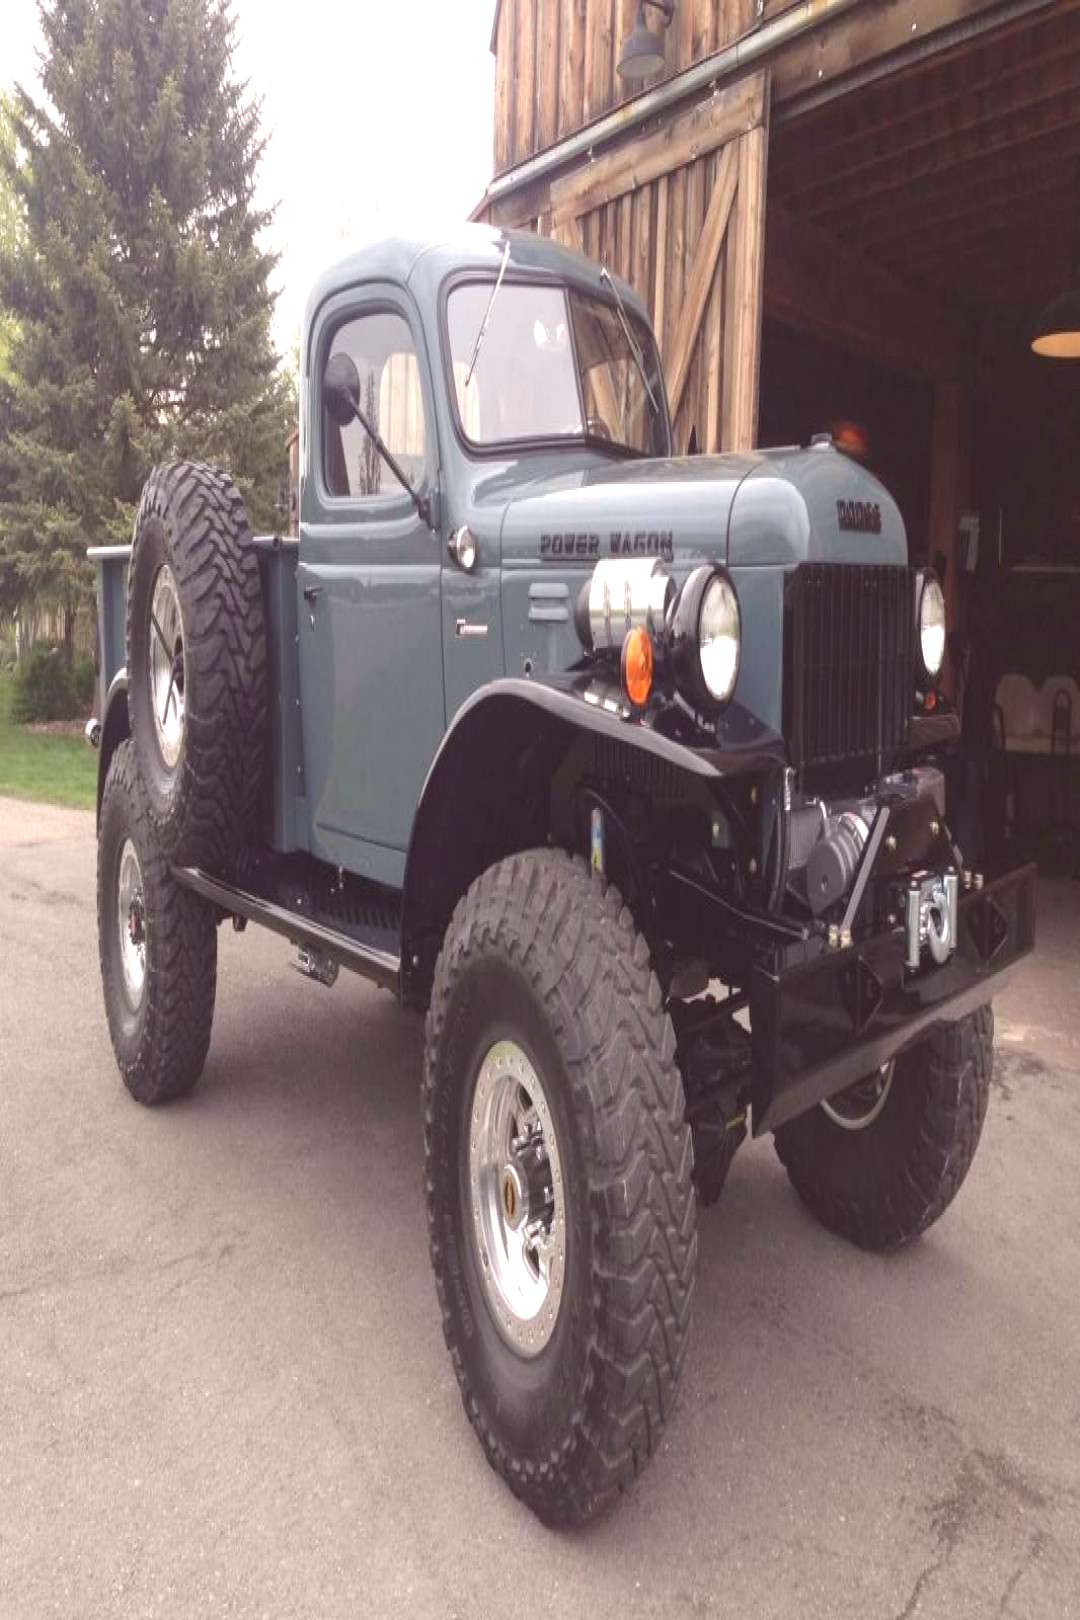 Legacy Classic Trucks Inventory - 1947 Dodge Power Wagon 2DR